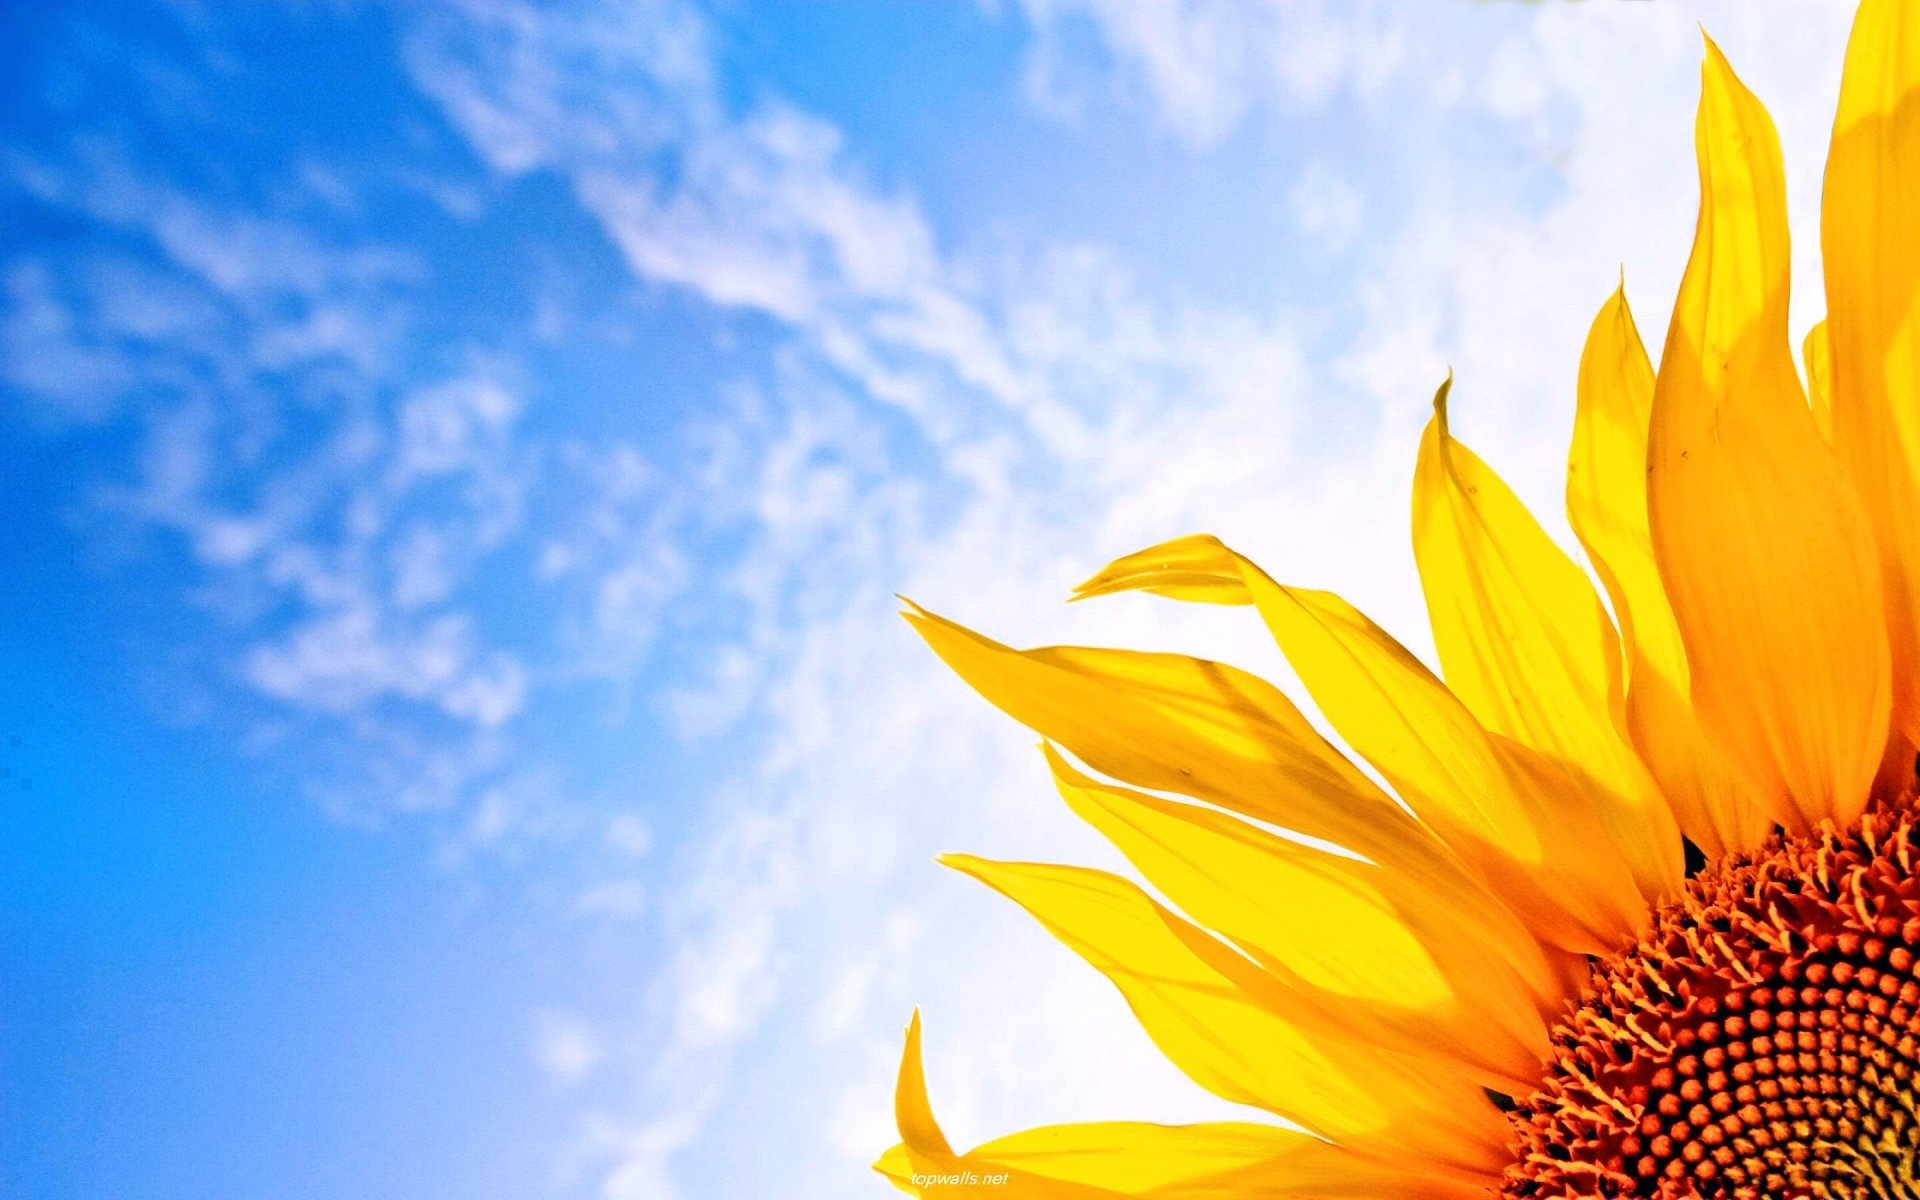 Earth - Spring  Sunflower Sunny Colorful Yellow Sky Wallpaper